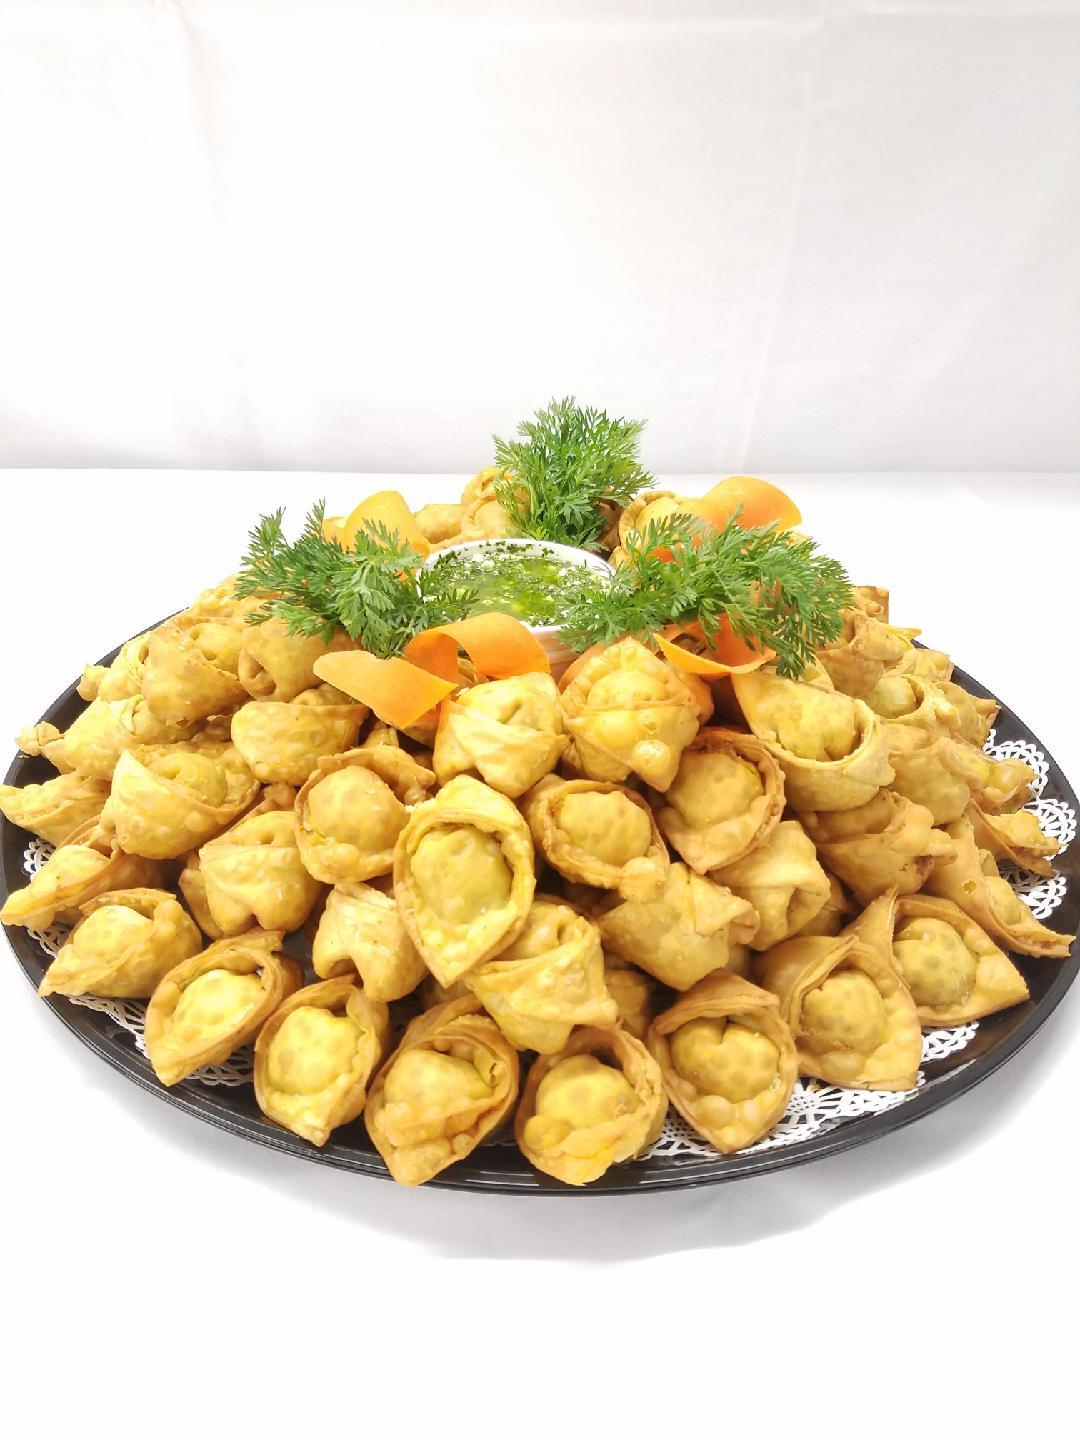 Catering option